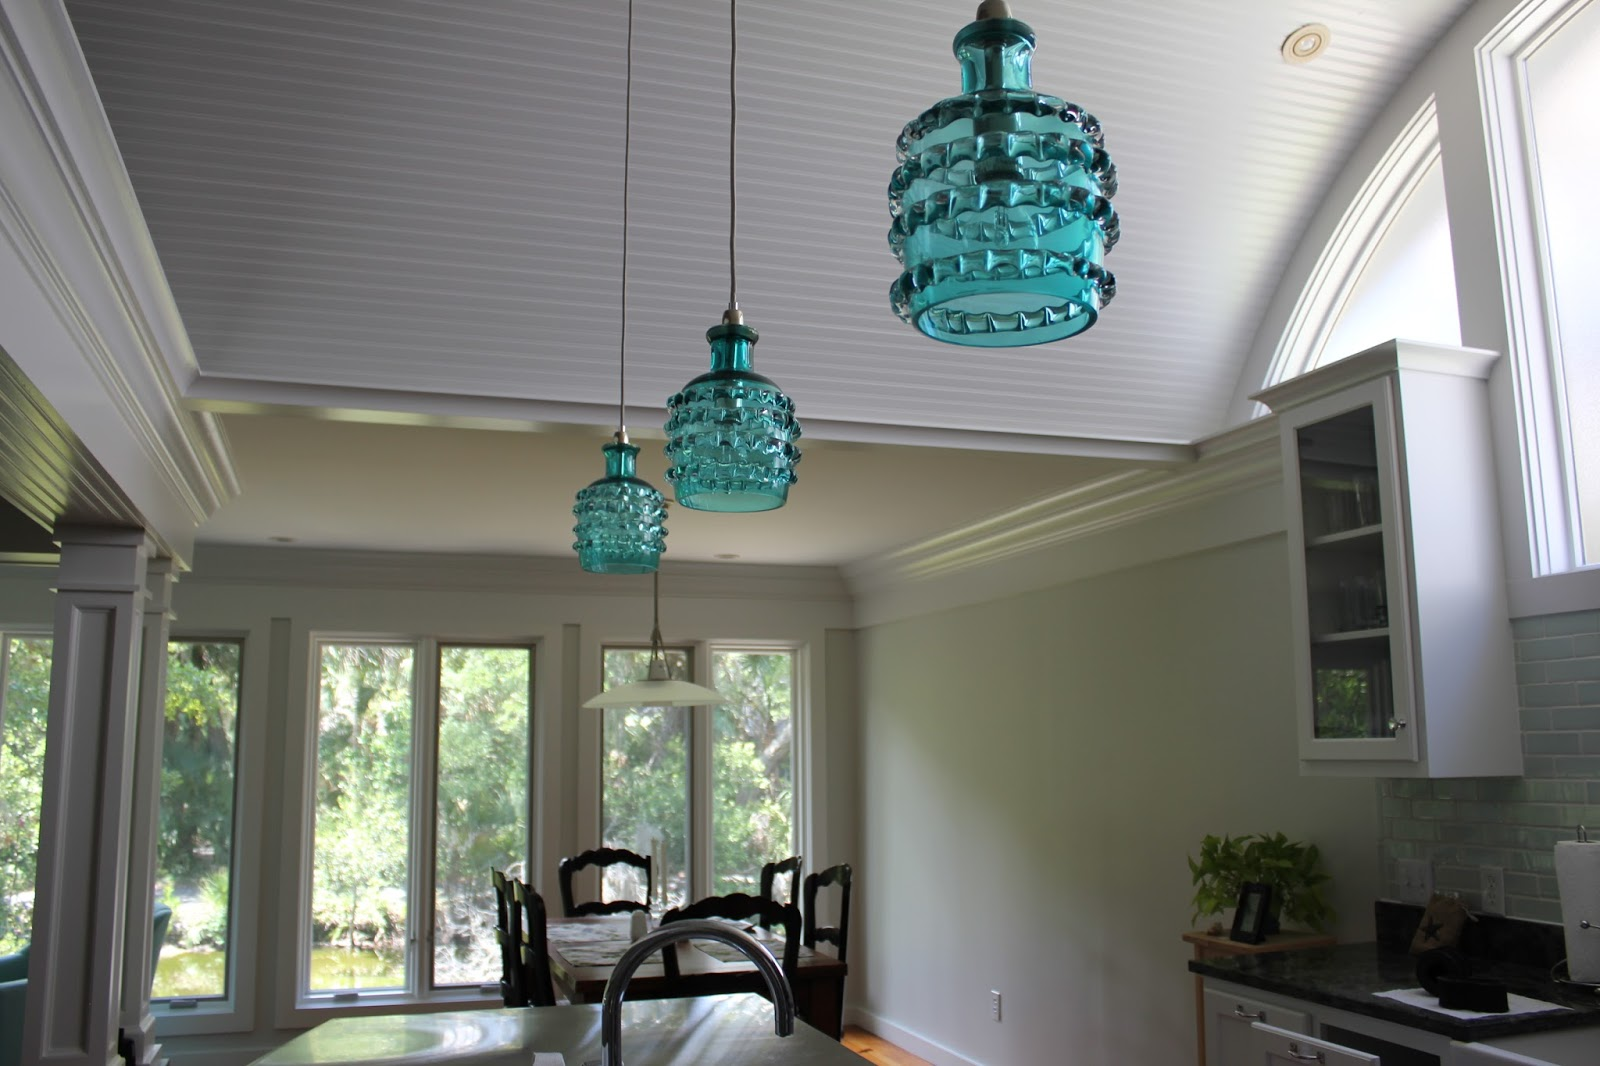 Beach house lighting - There Were Three Not So Fun Pendant Lights Hanging Over The Island That Had To Go They Were Replaced With Three Super Awesome Pendant Lights